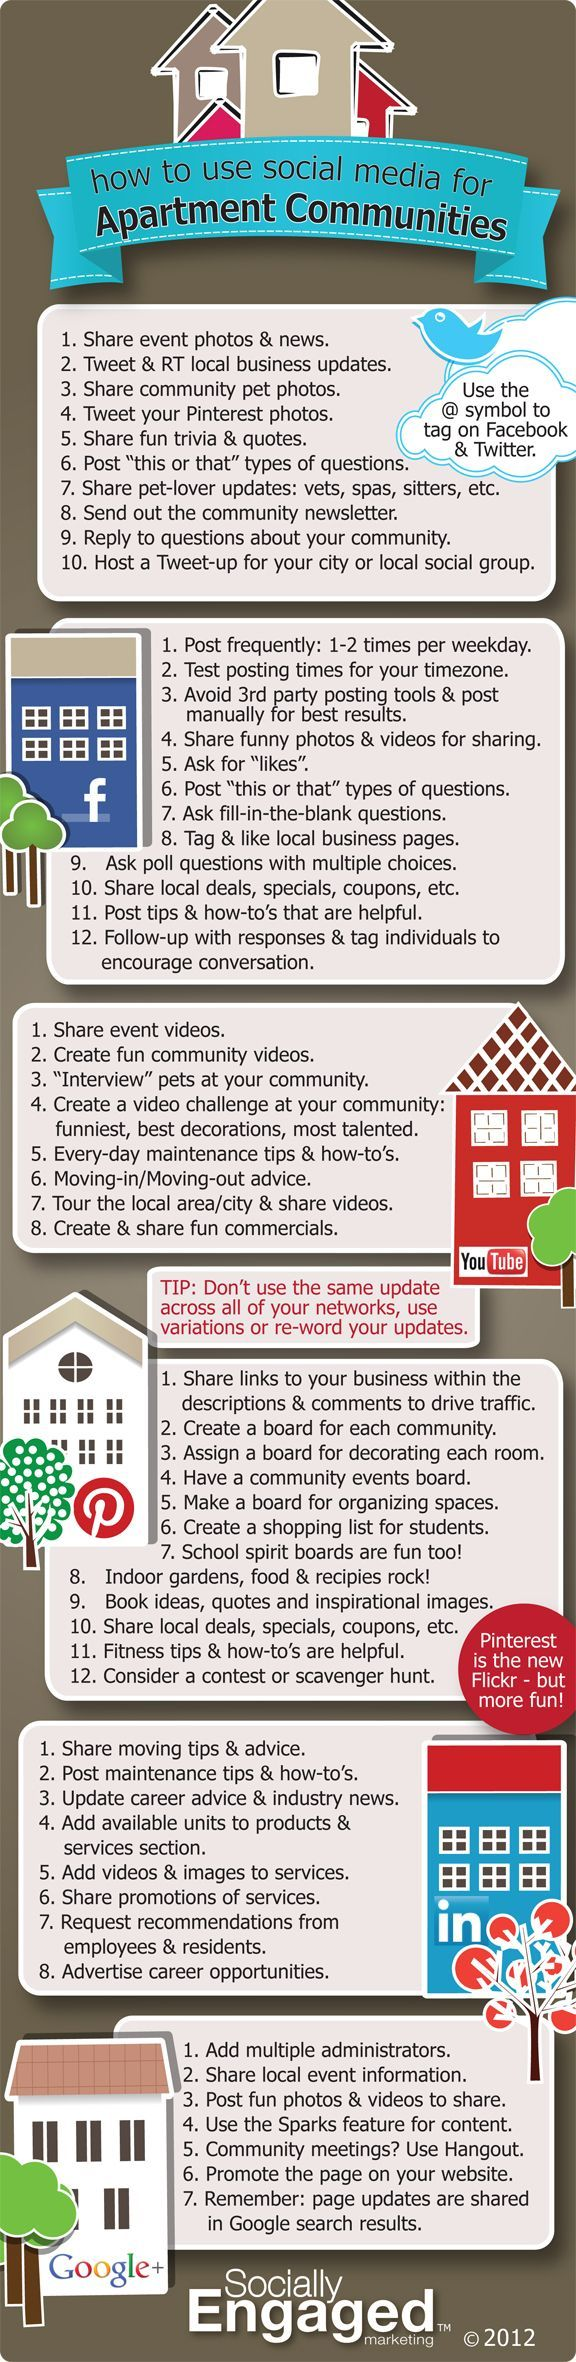 Using Social Media for Apartment Communities (Infographic)